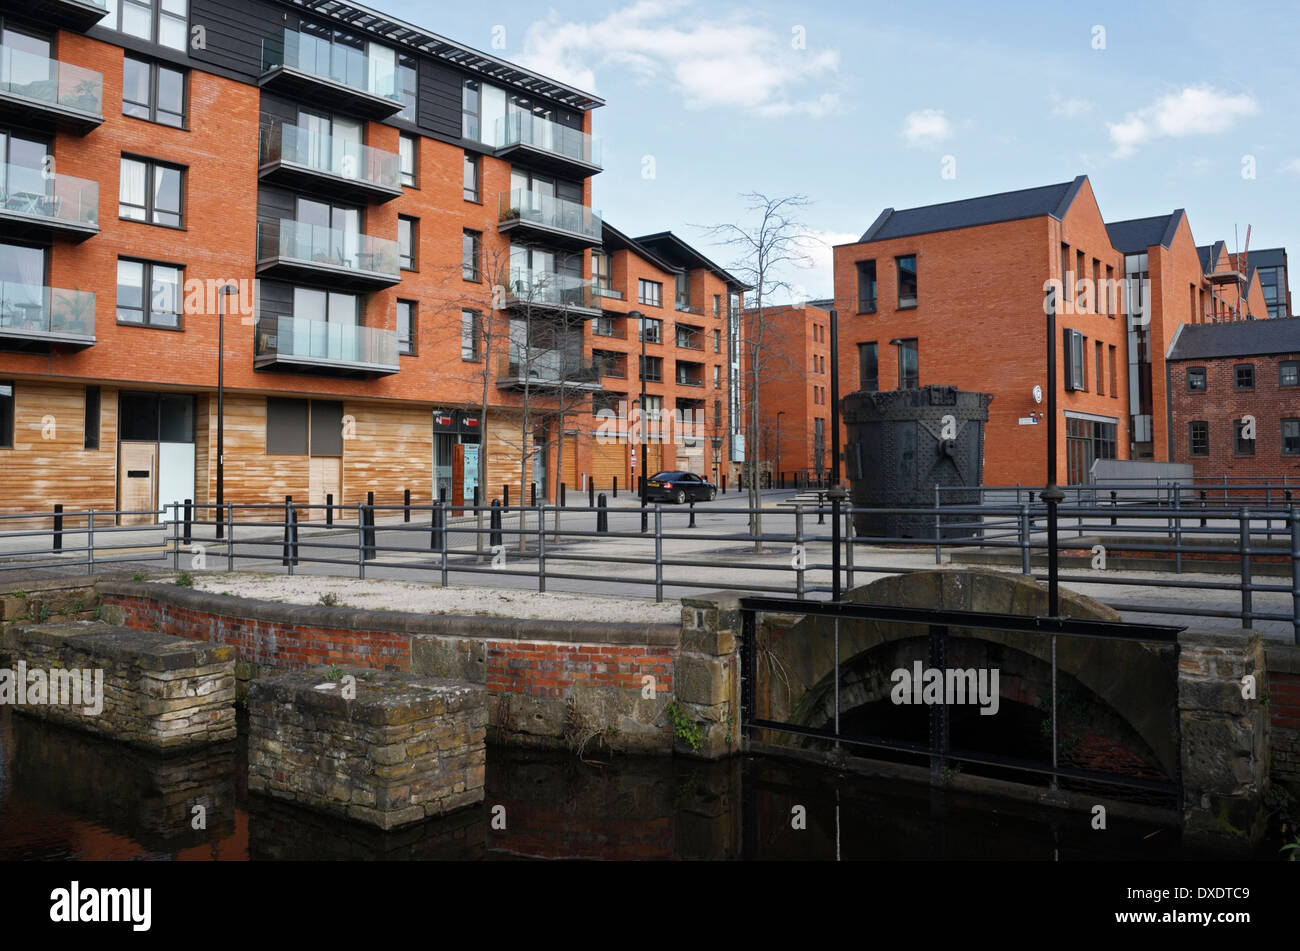 Kelham Island Apartments In Sheffield, Mill Run In Foreground